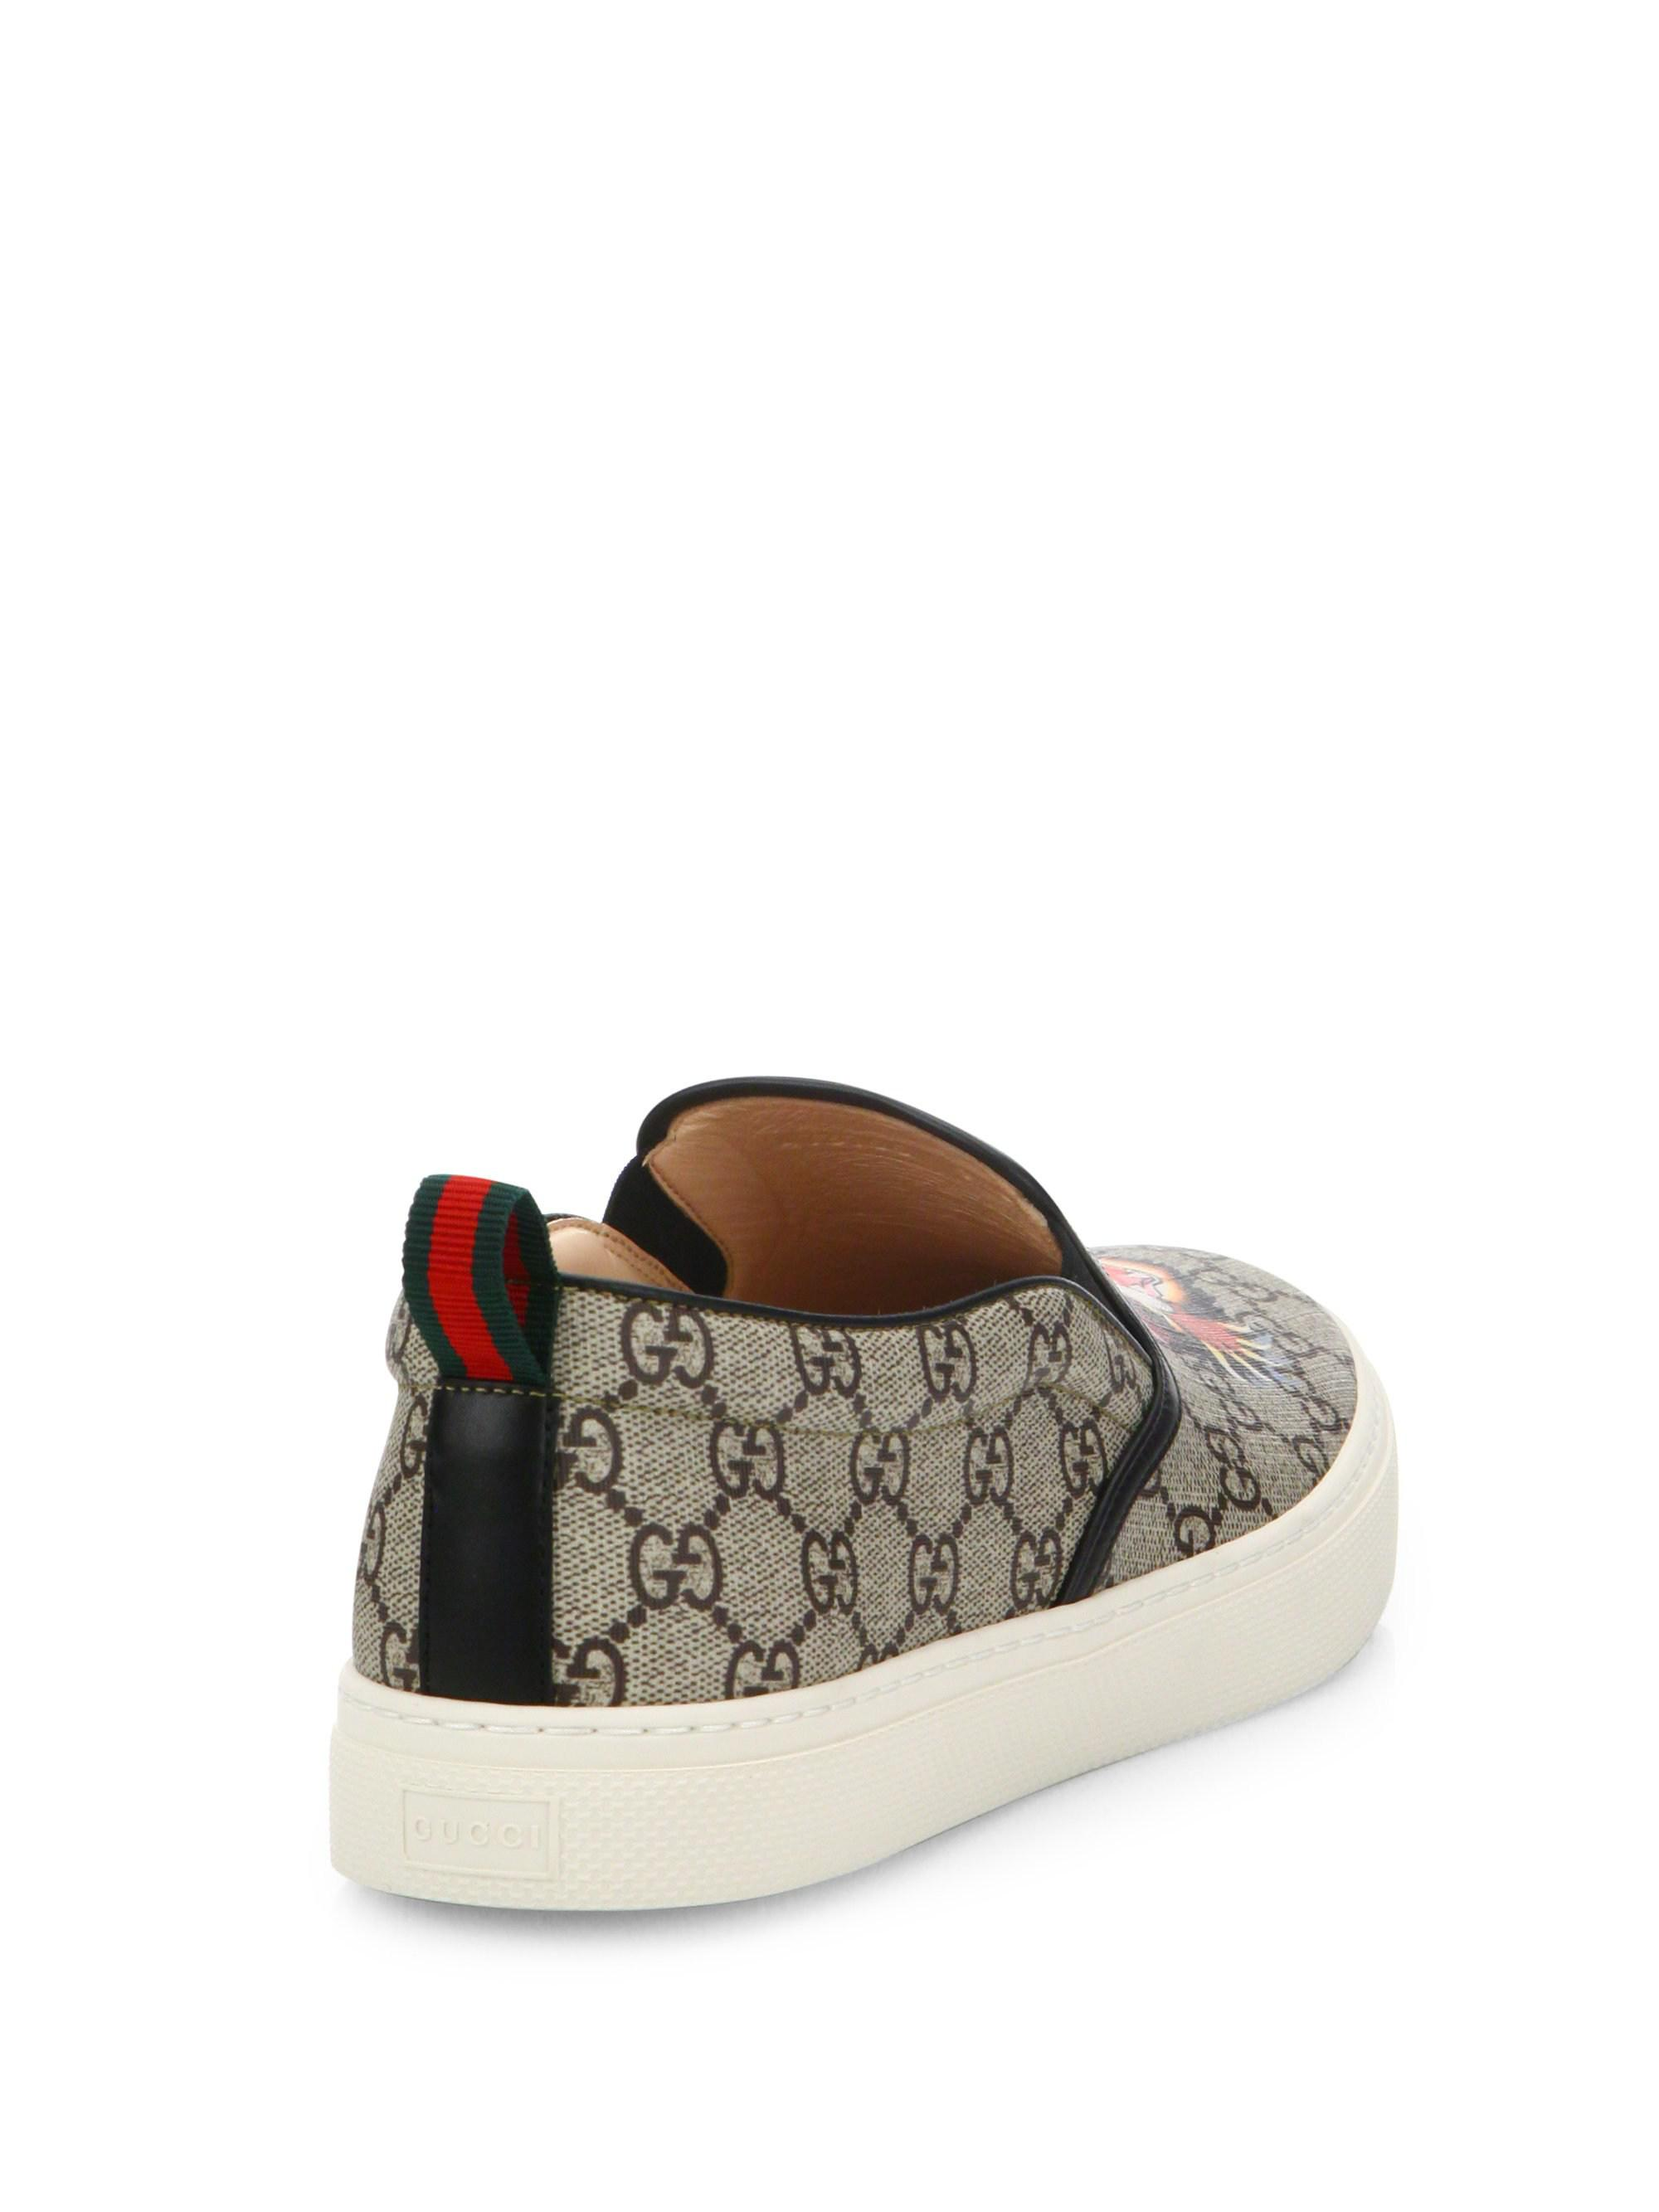 cc8a23d81d79 Lyst - Gucci GG Supreme Angry Cat Slip-on Sneakers in Natural for Men